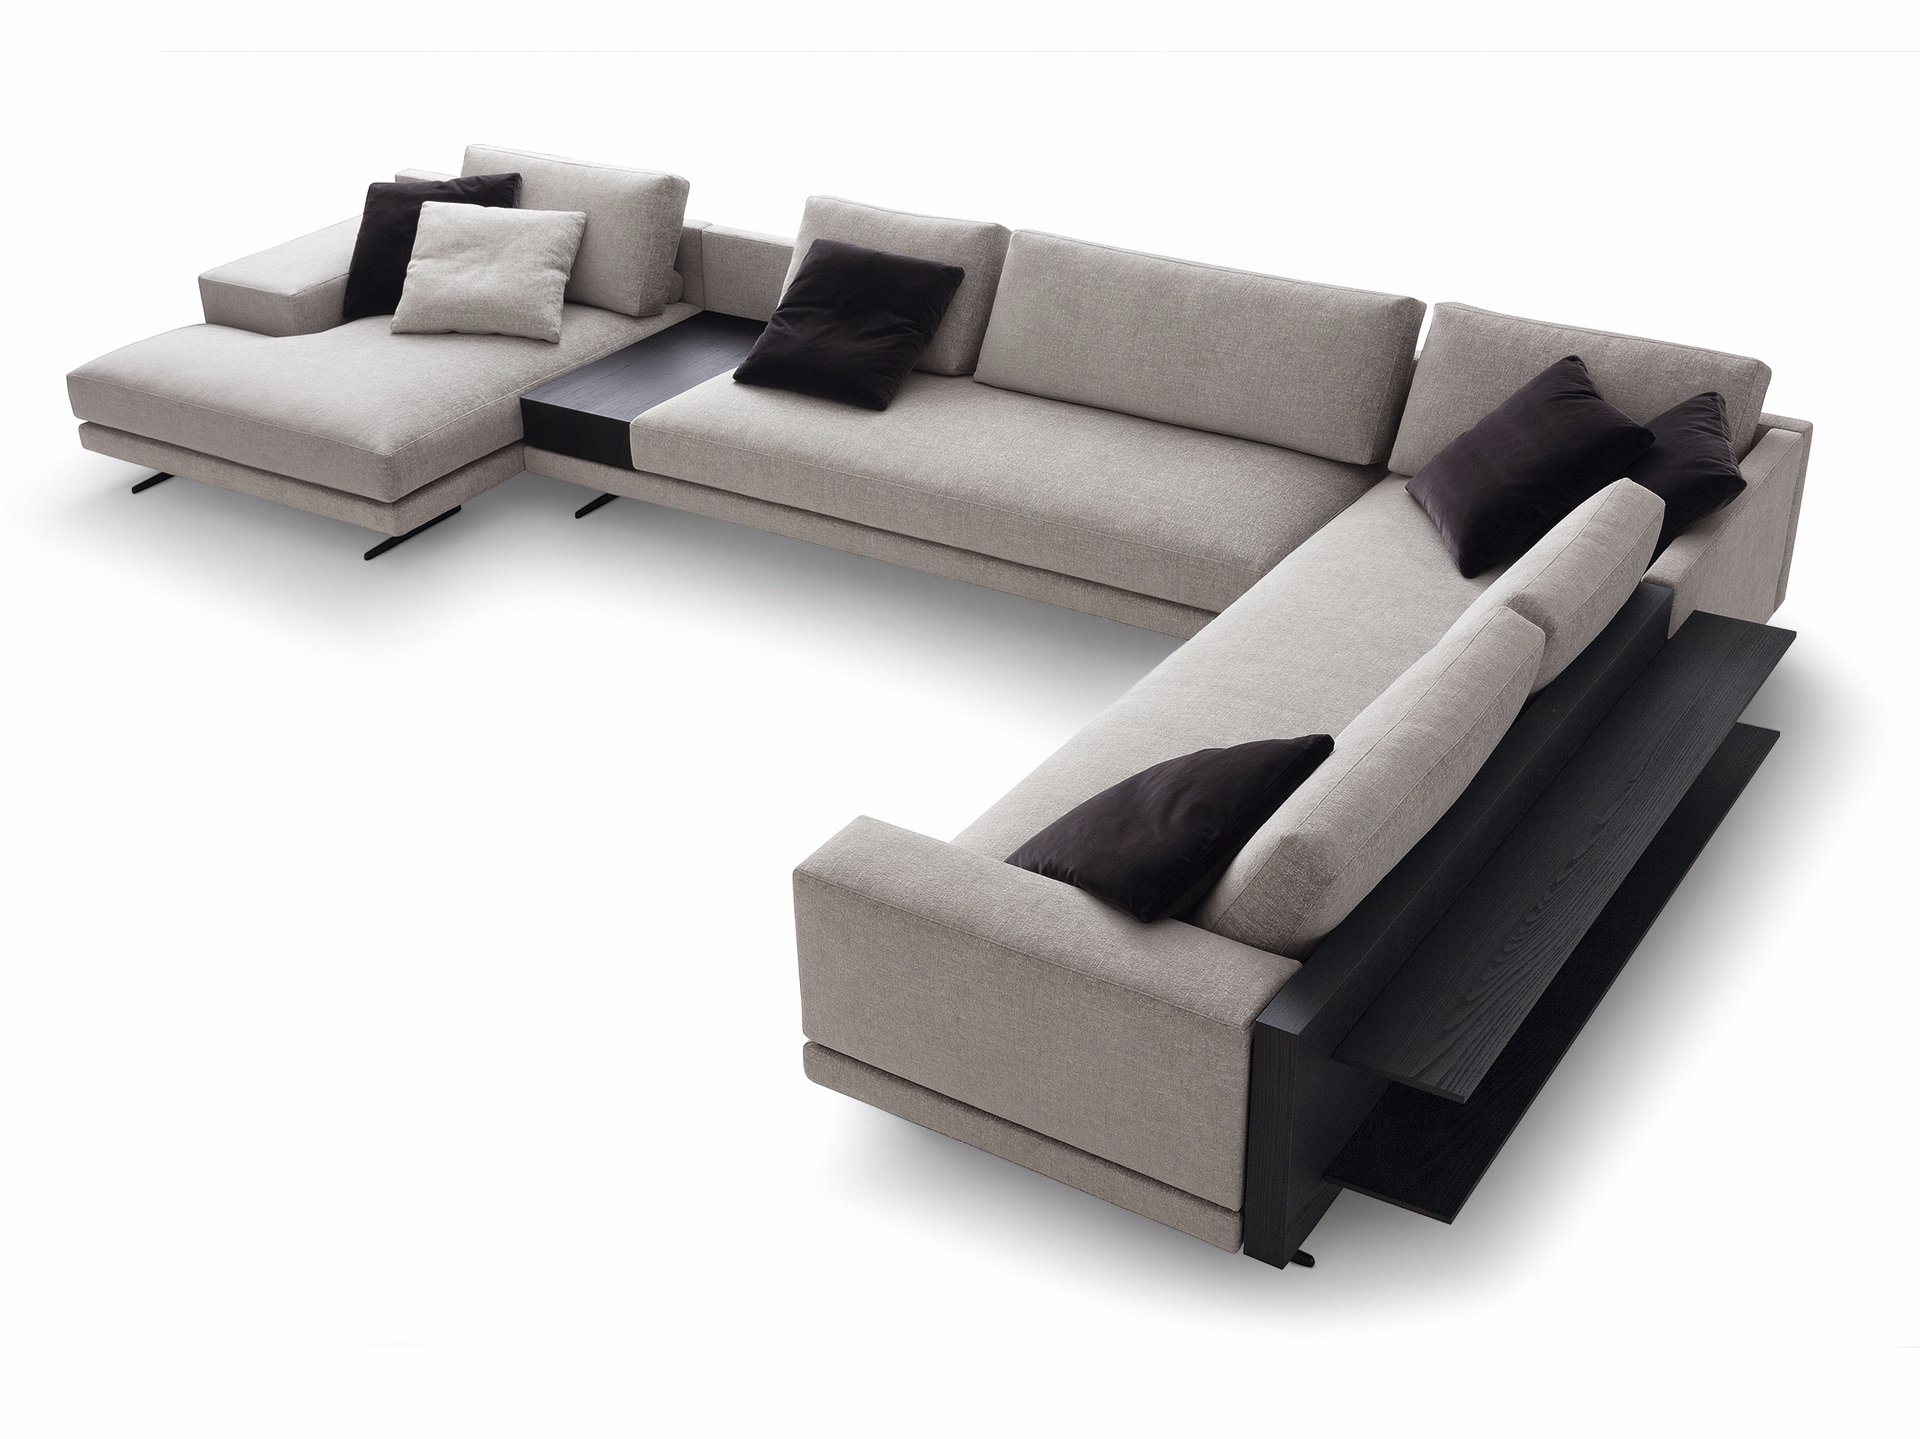 Mondrian corner sofa mondrian collection by poliform for Catalogos de sofas chaise longue